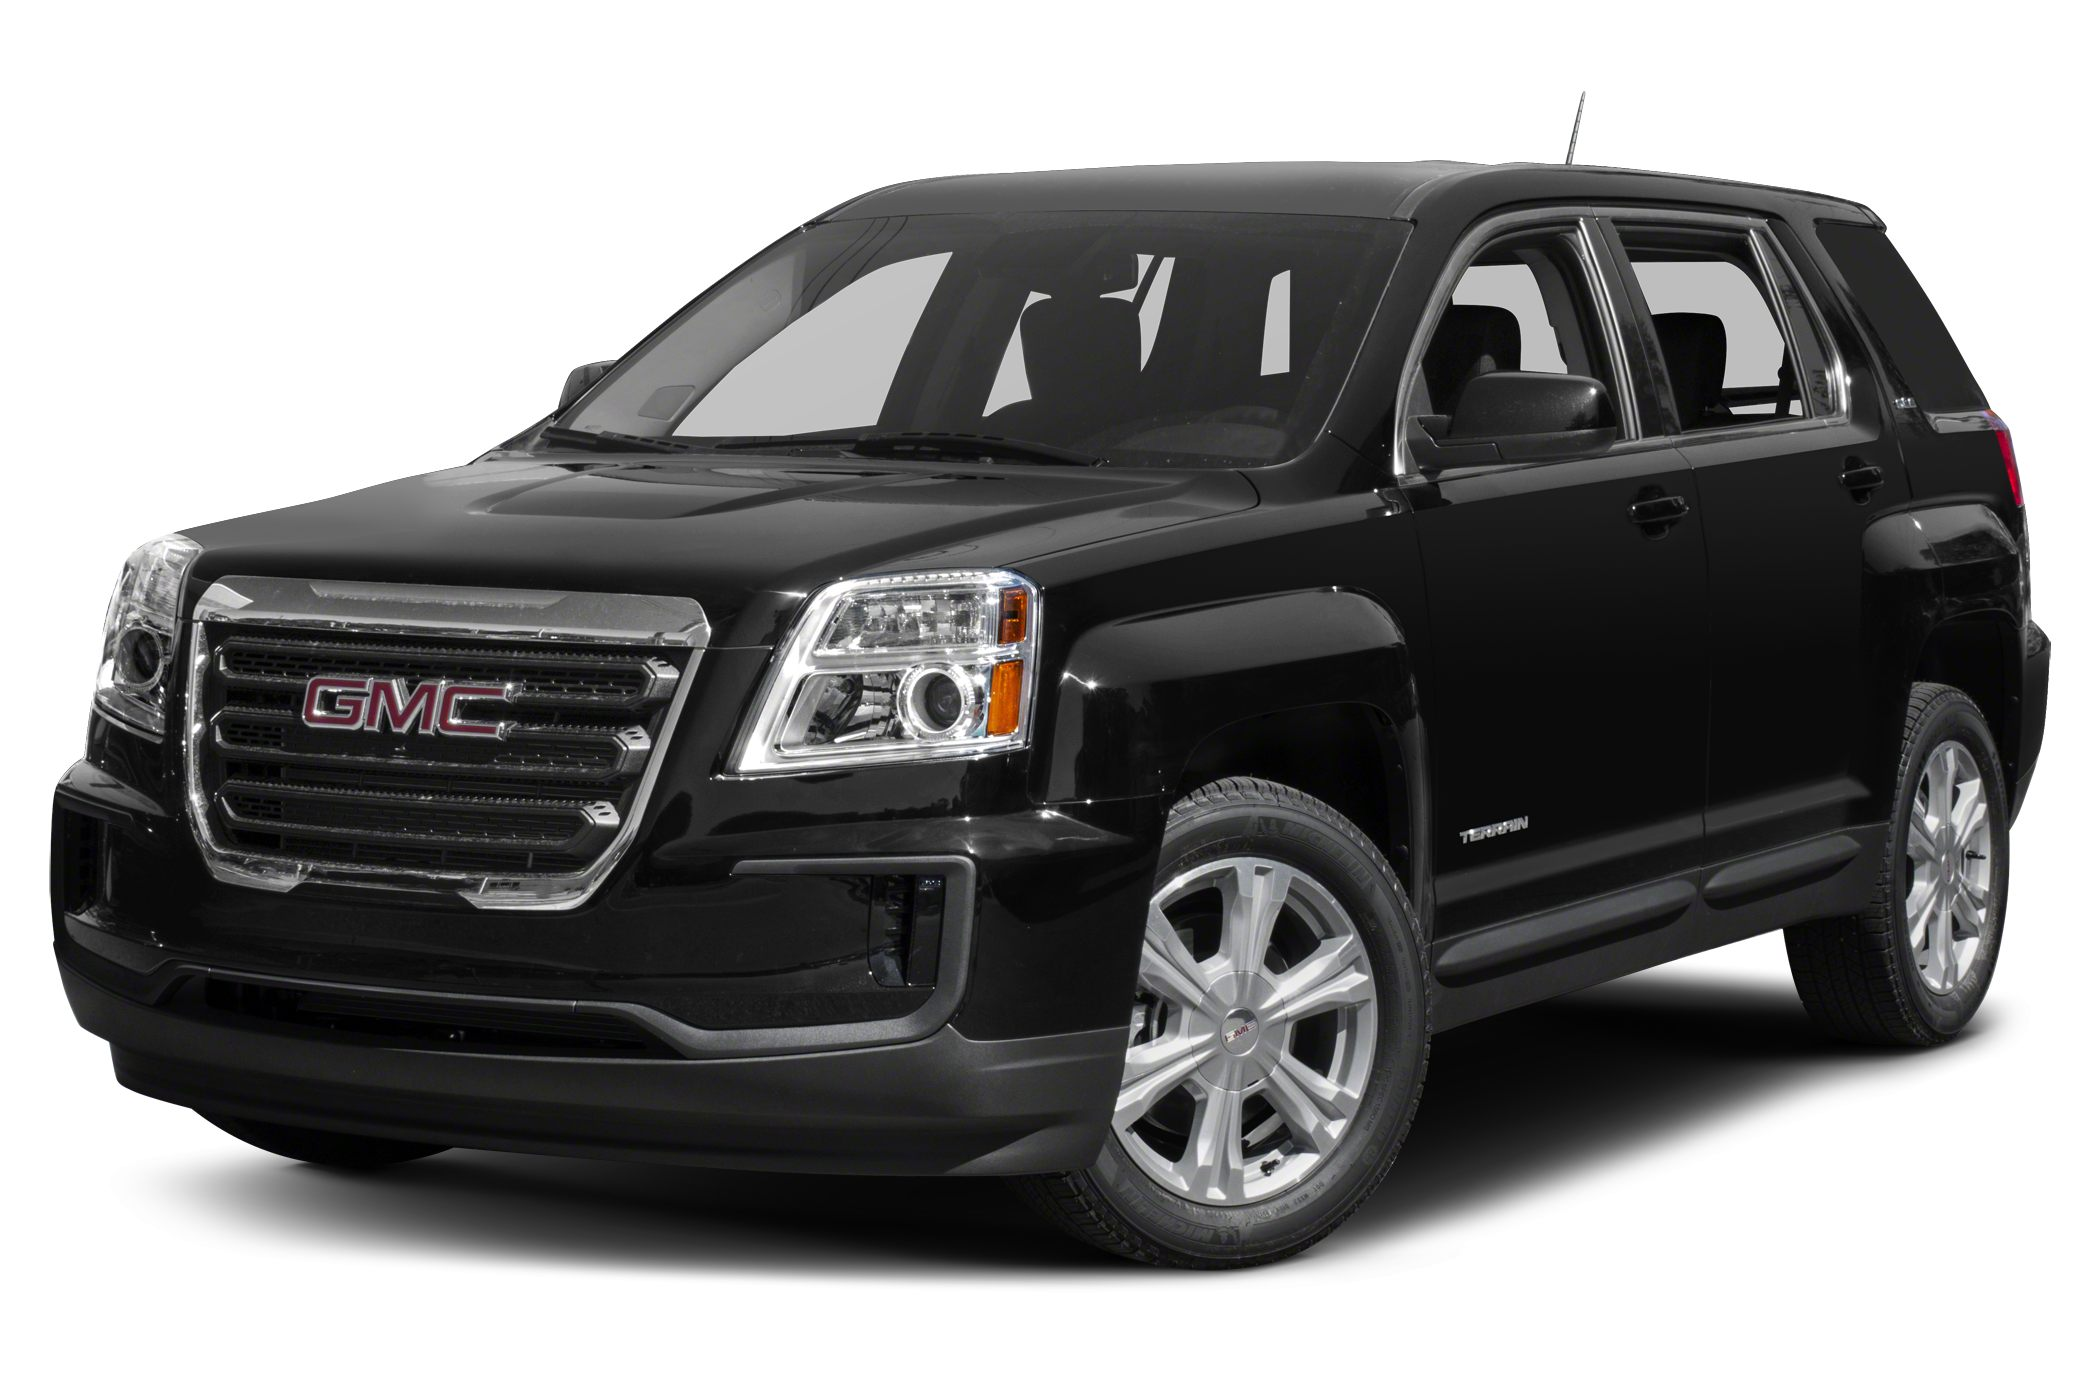 2017 Terrain Colors >> See 2017 Gmc Terrain Color Options Carsdirect